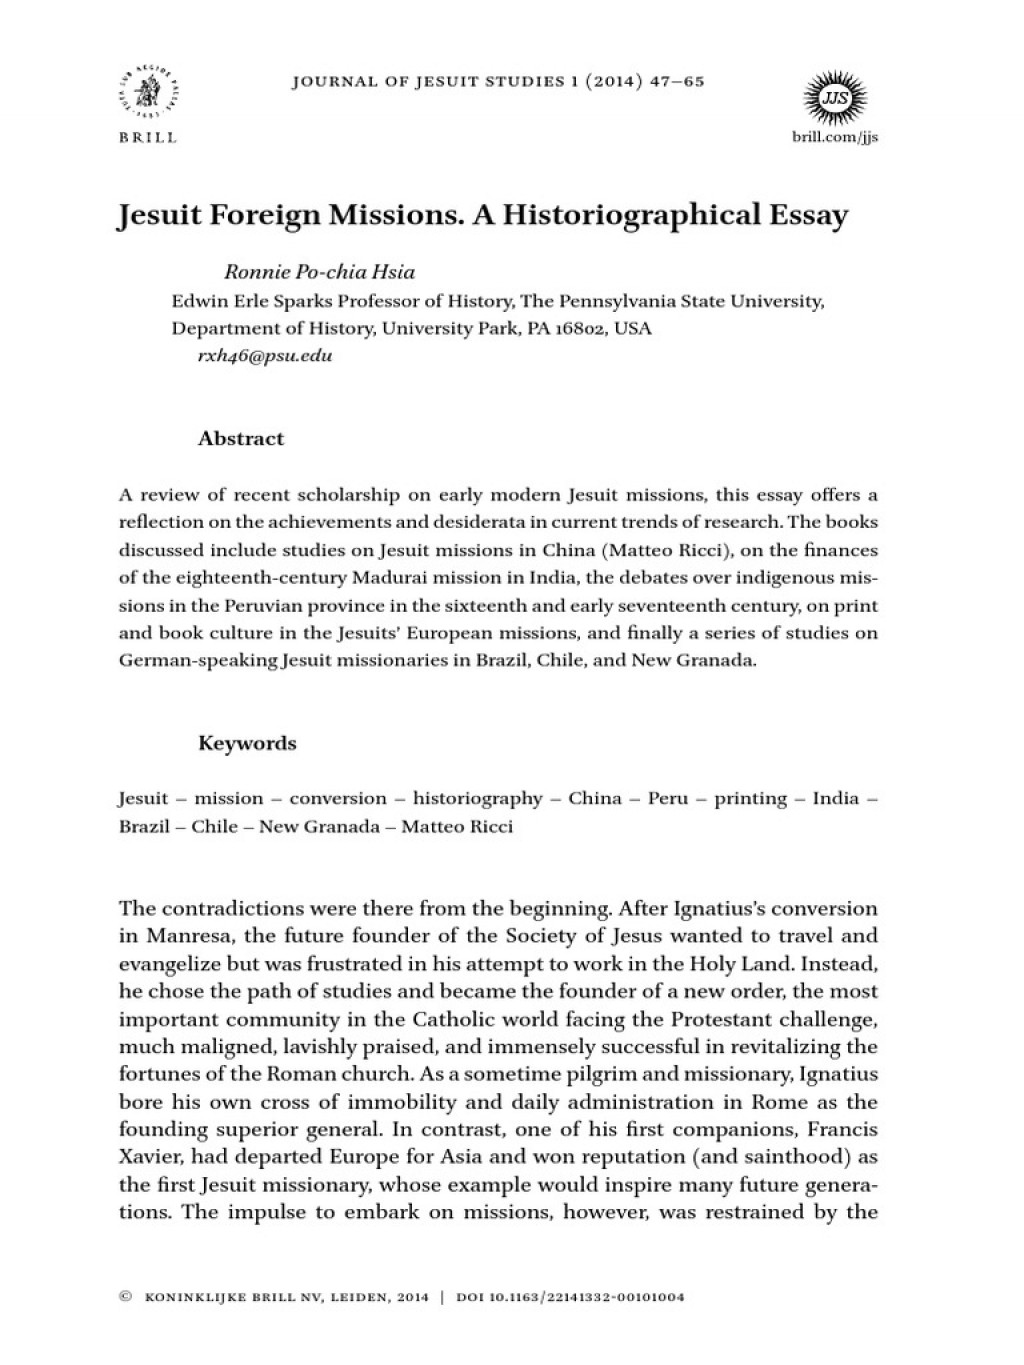 004 Historiographical Essay Example Jesuit Foreign Missions  58d38df8ee3435de0e6e4ab7 Phenomenal Outline On The Civil WarLarge